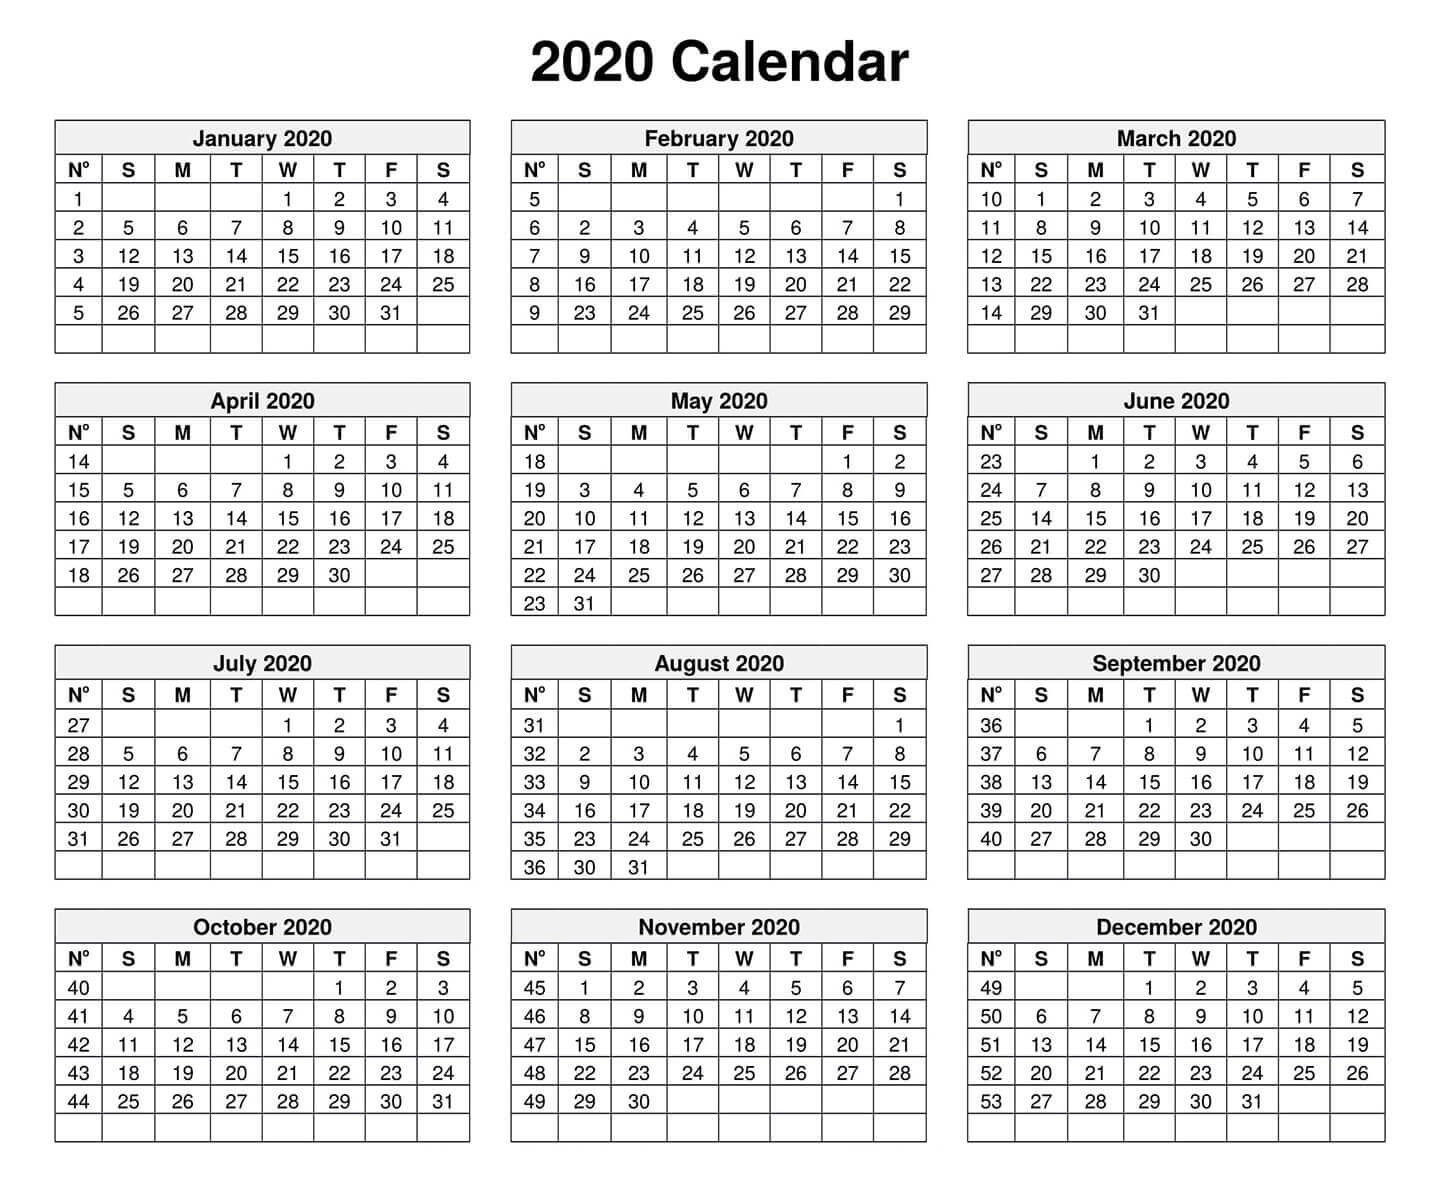 Yearly Calendar Template With Notes 2020 - 2019 Calendars-2020 Month At A Glance Calendar Template